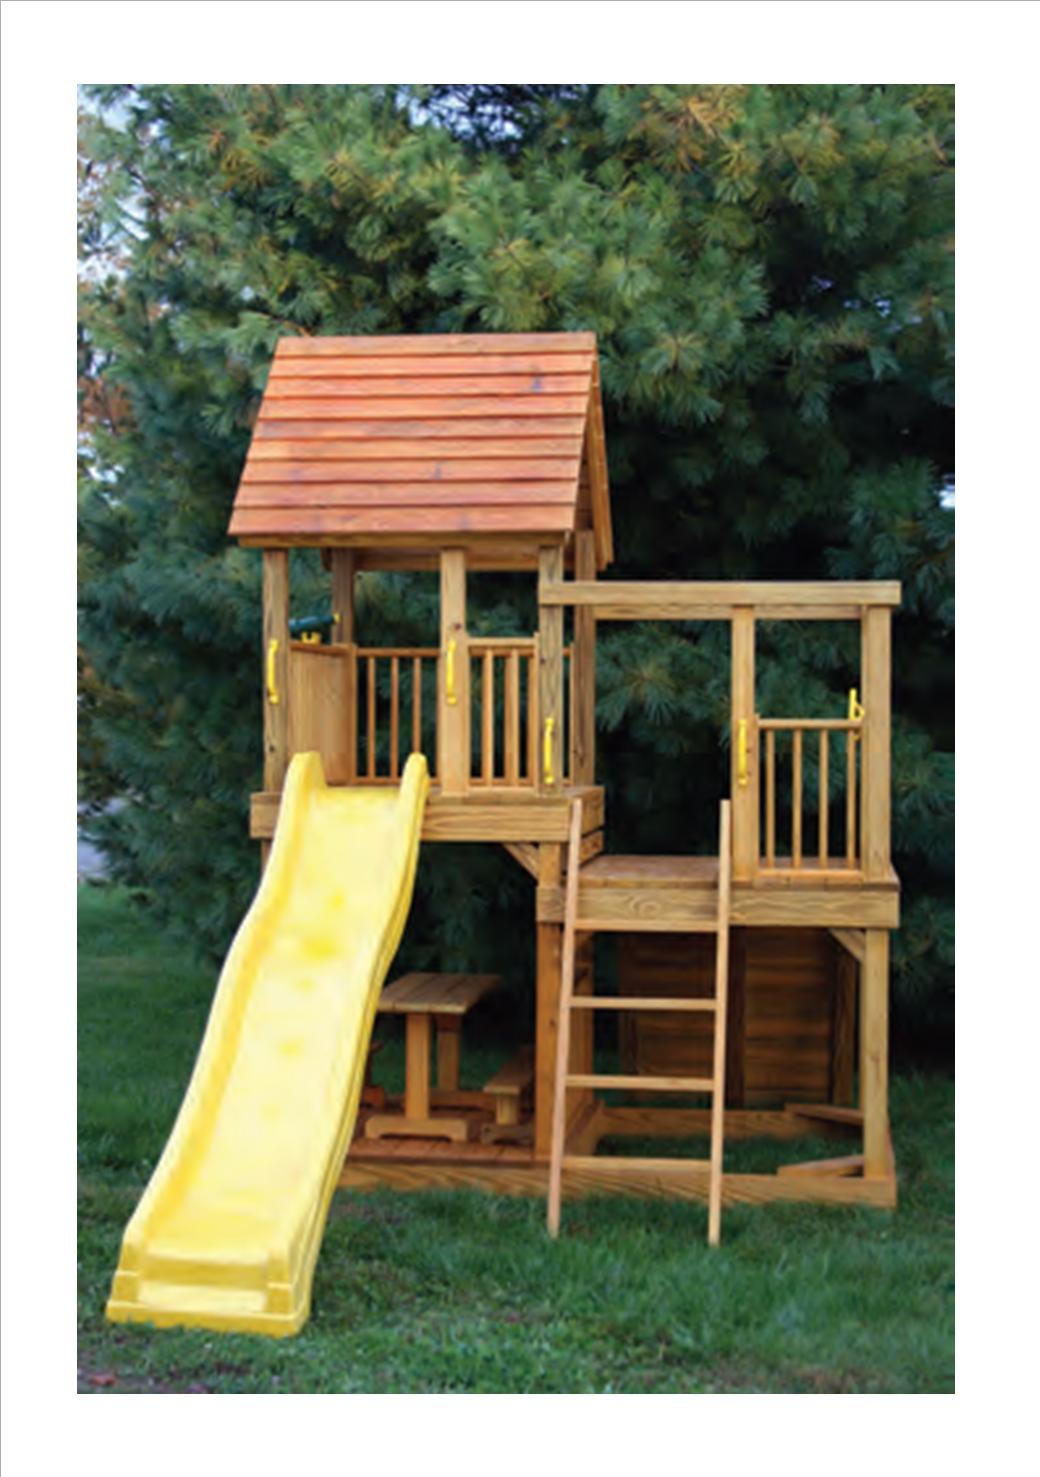 A 5u0027 X 8u0027 Split Level Tower With Both 4u0027 And 5u0027 Floor Heights One Side Of  Base Has A Sandbox, And The Other Side Includes A Picnic Table With Benches. Part 30